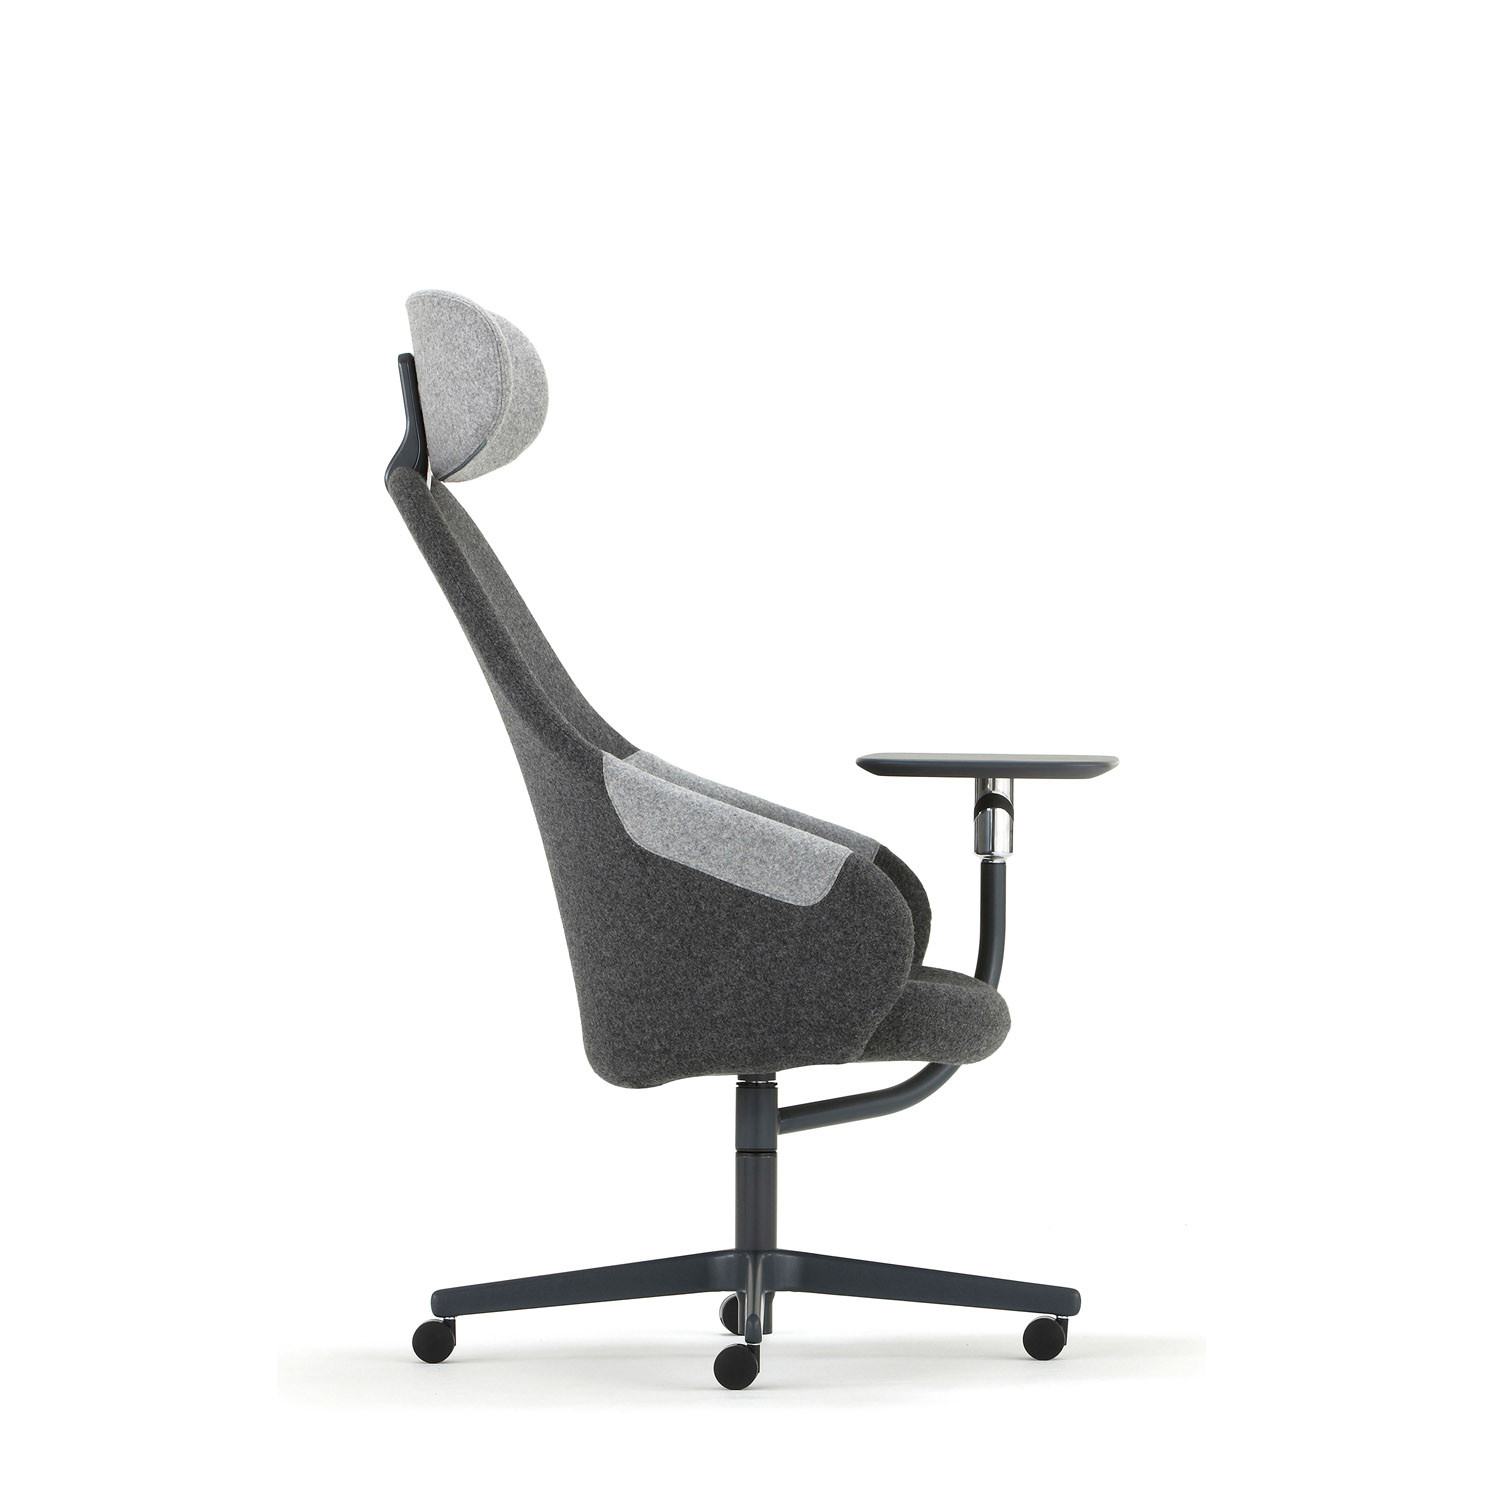 Ad-Lib Work Lounge Chair with Tablet